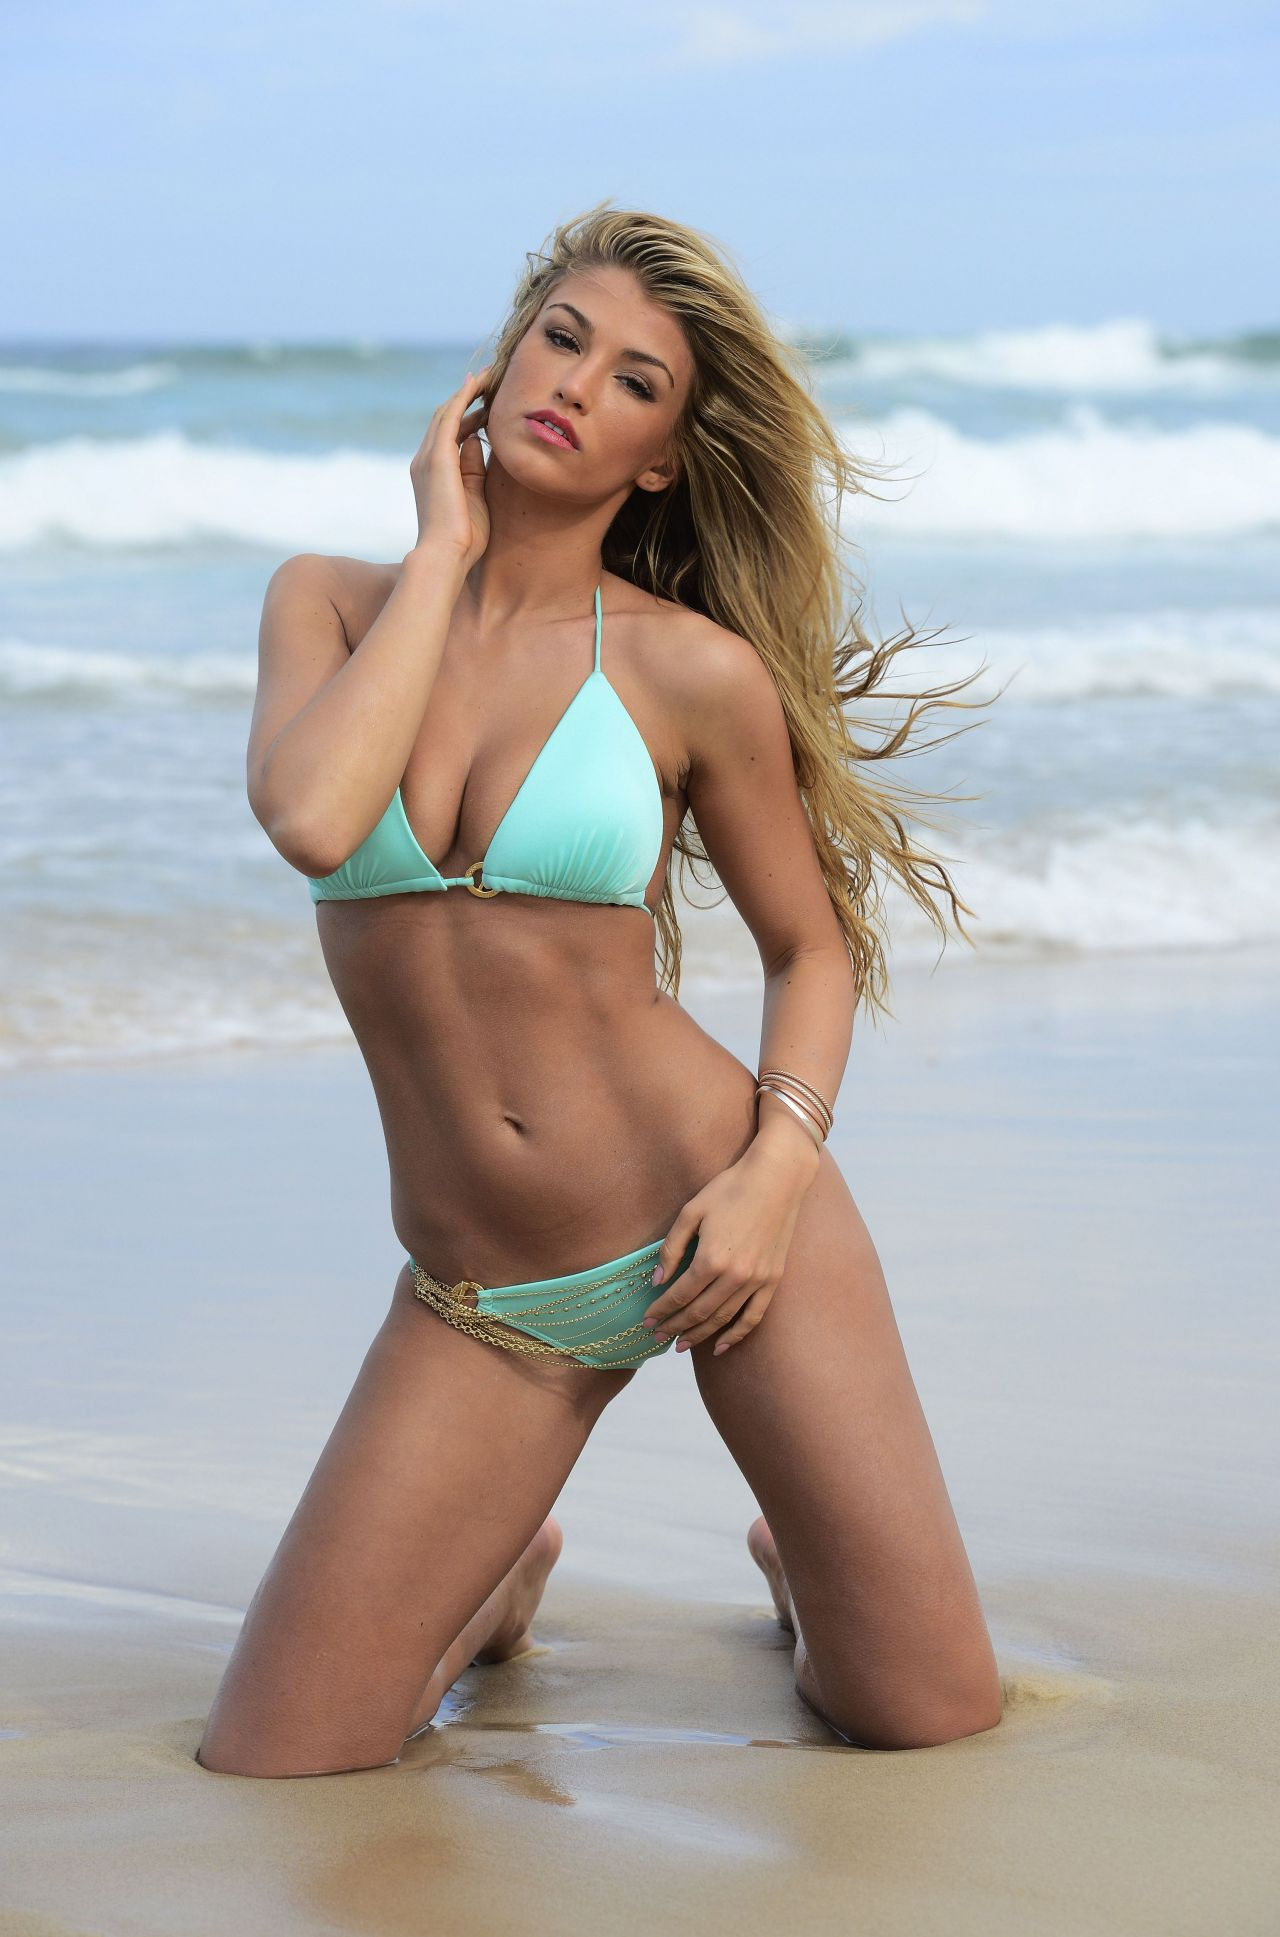 Amy Willerton in a Bikini - Surfers Paradise Australia Bikini - High Quality Photos